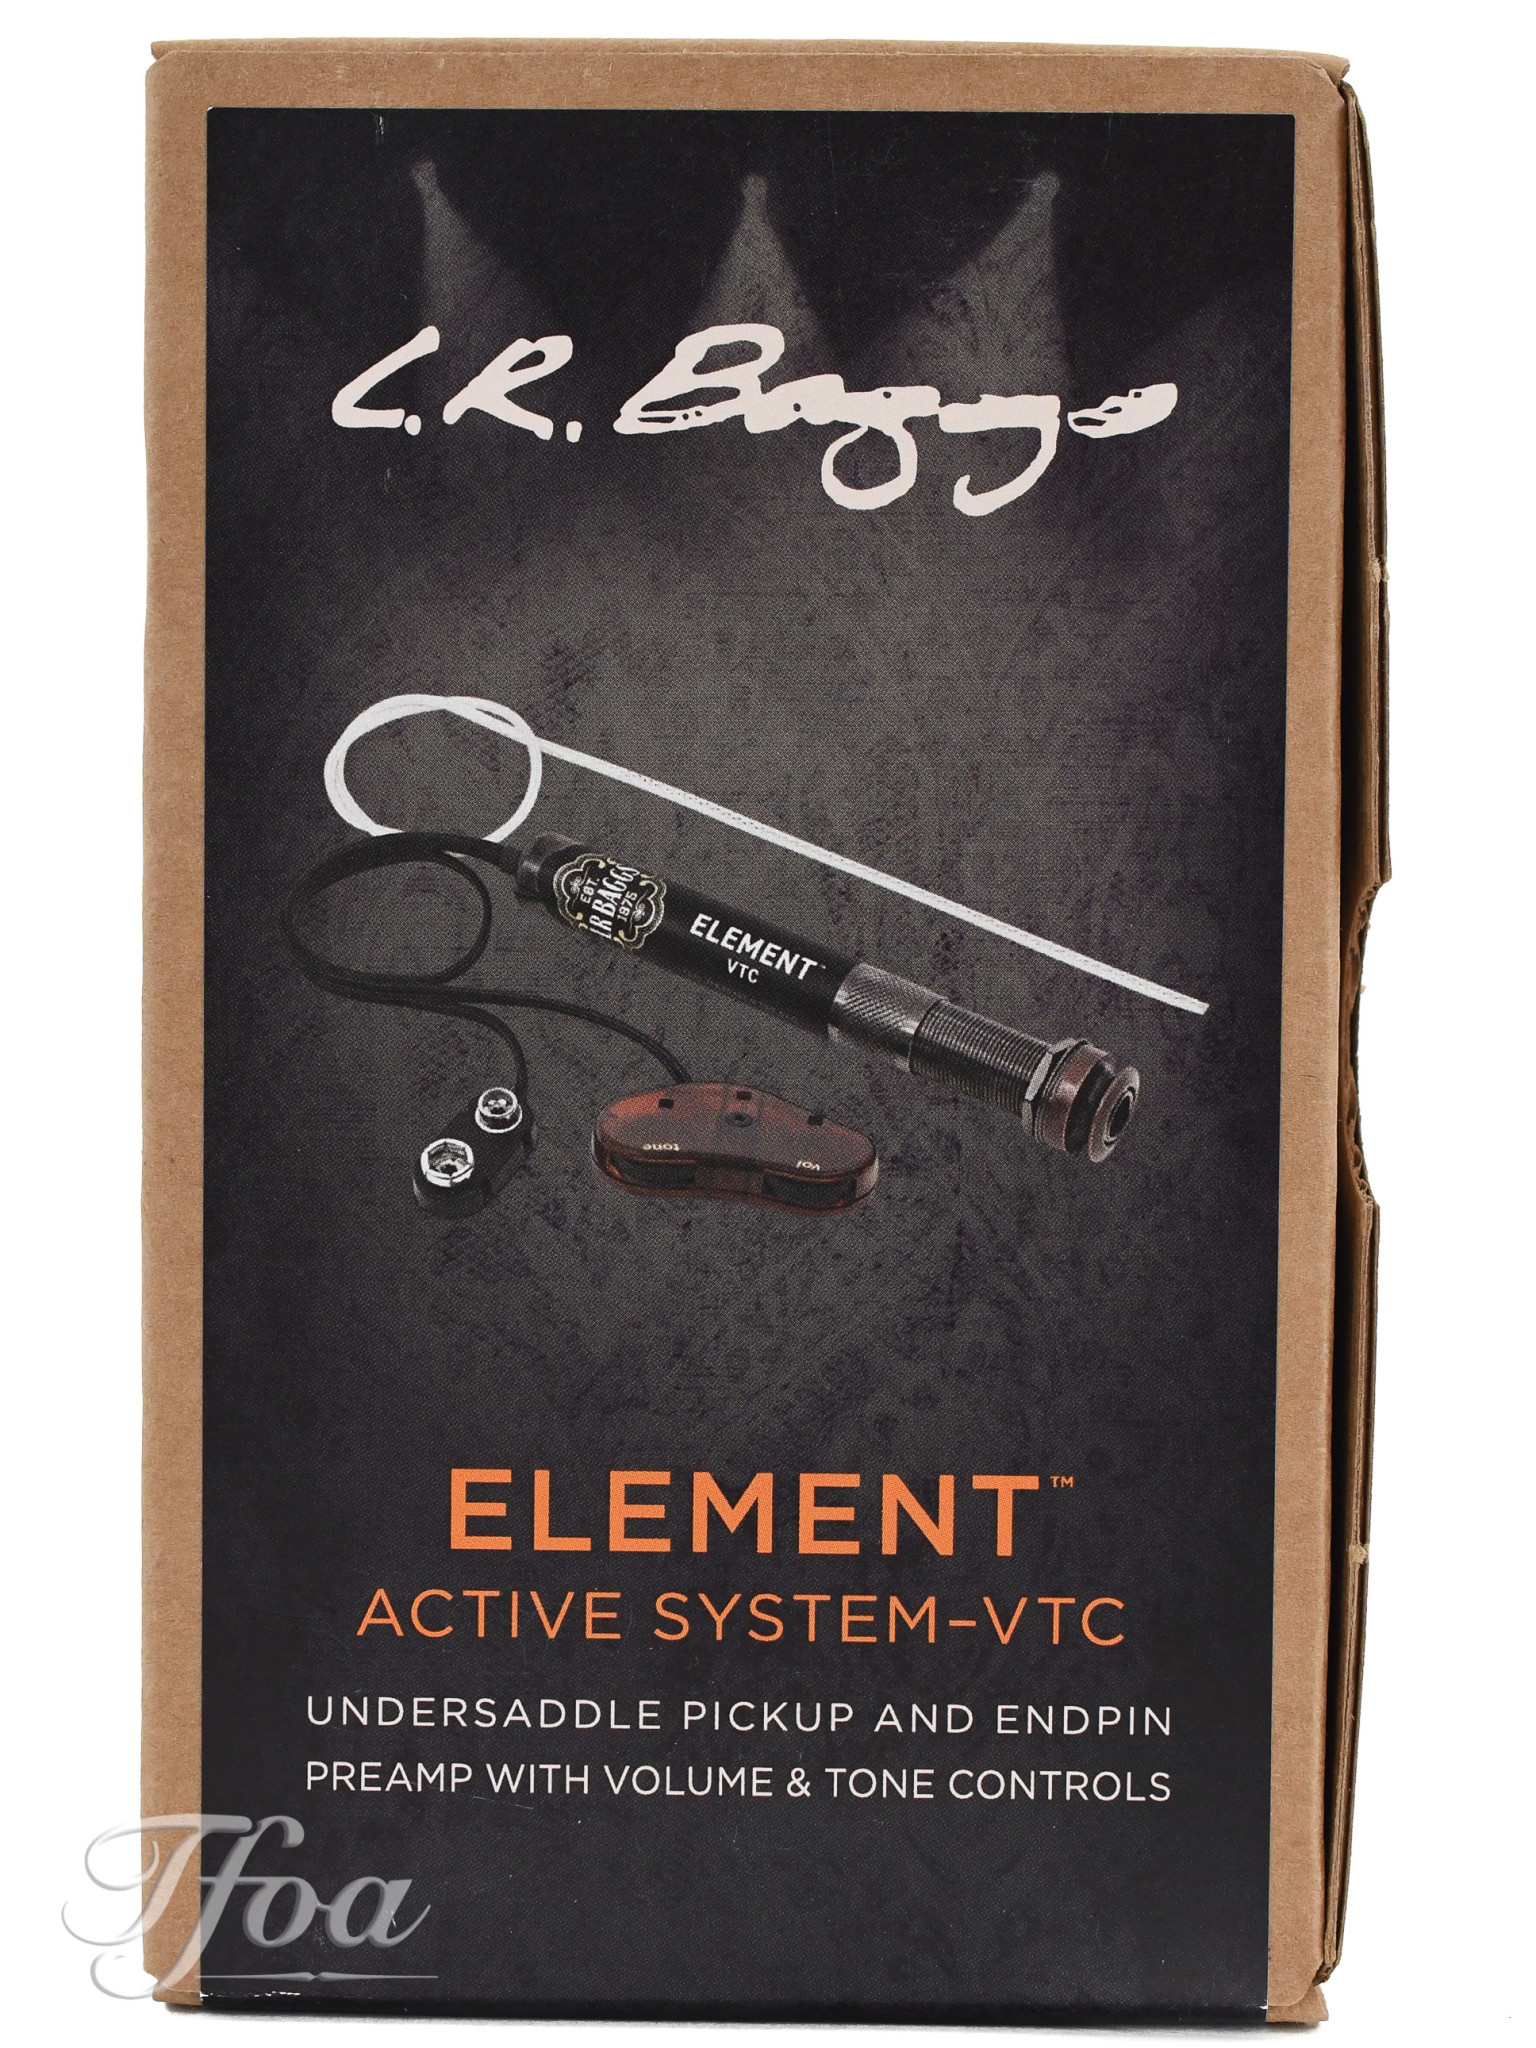 LR Baggs Element Active  with Volume+Tone Control